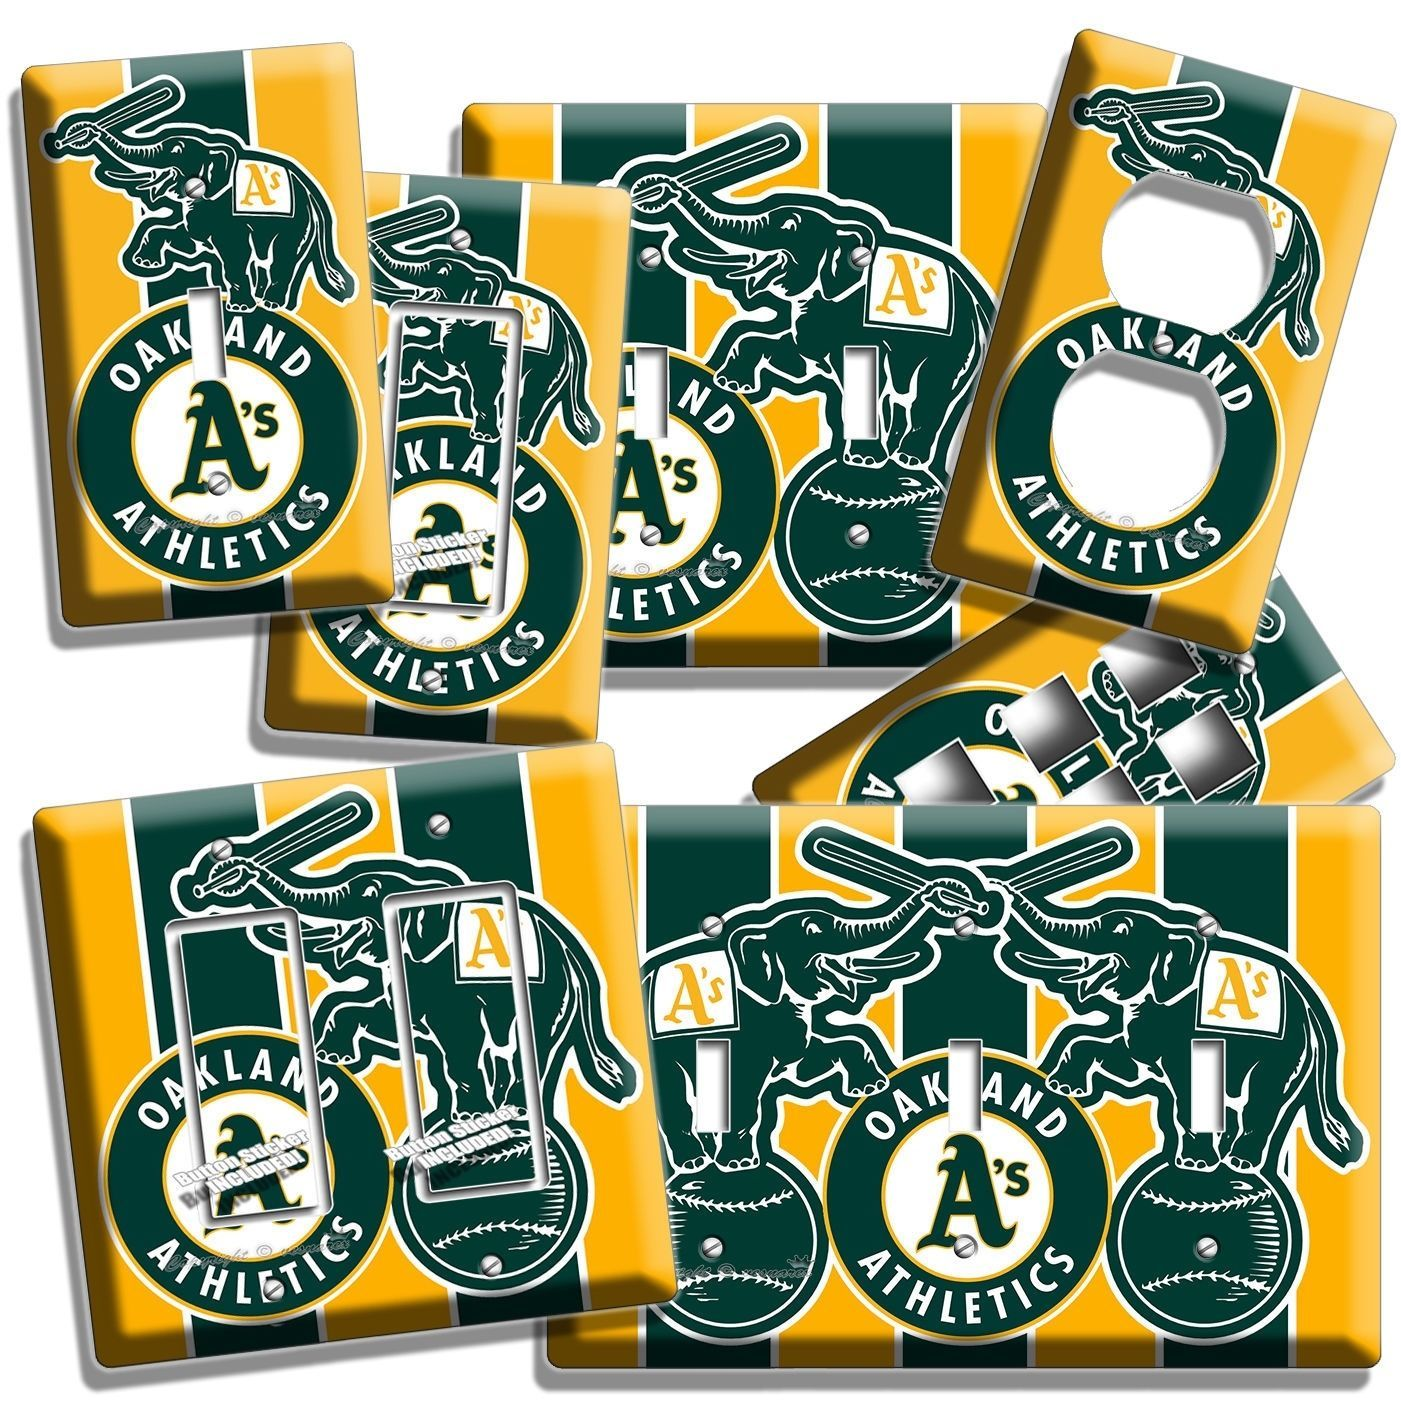 Primary image for A'S OAKLAND ATHLETICS BASEBALL TEAM LIGHT SWITCH OUTLET WALL PLATE COVER DECOR